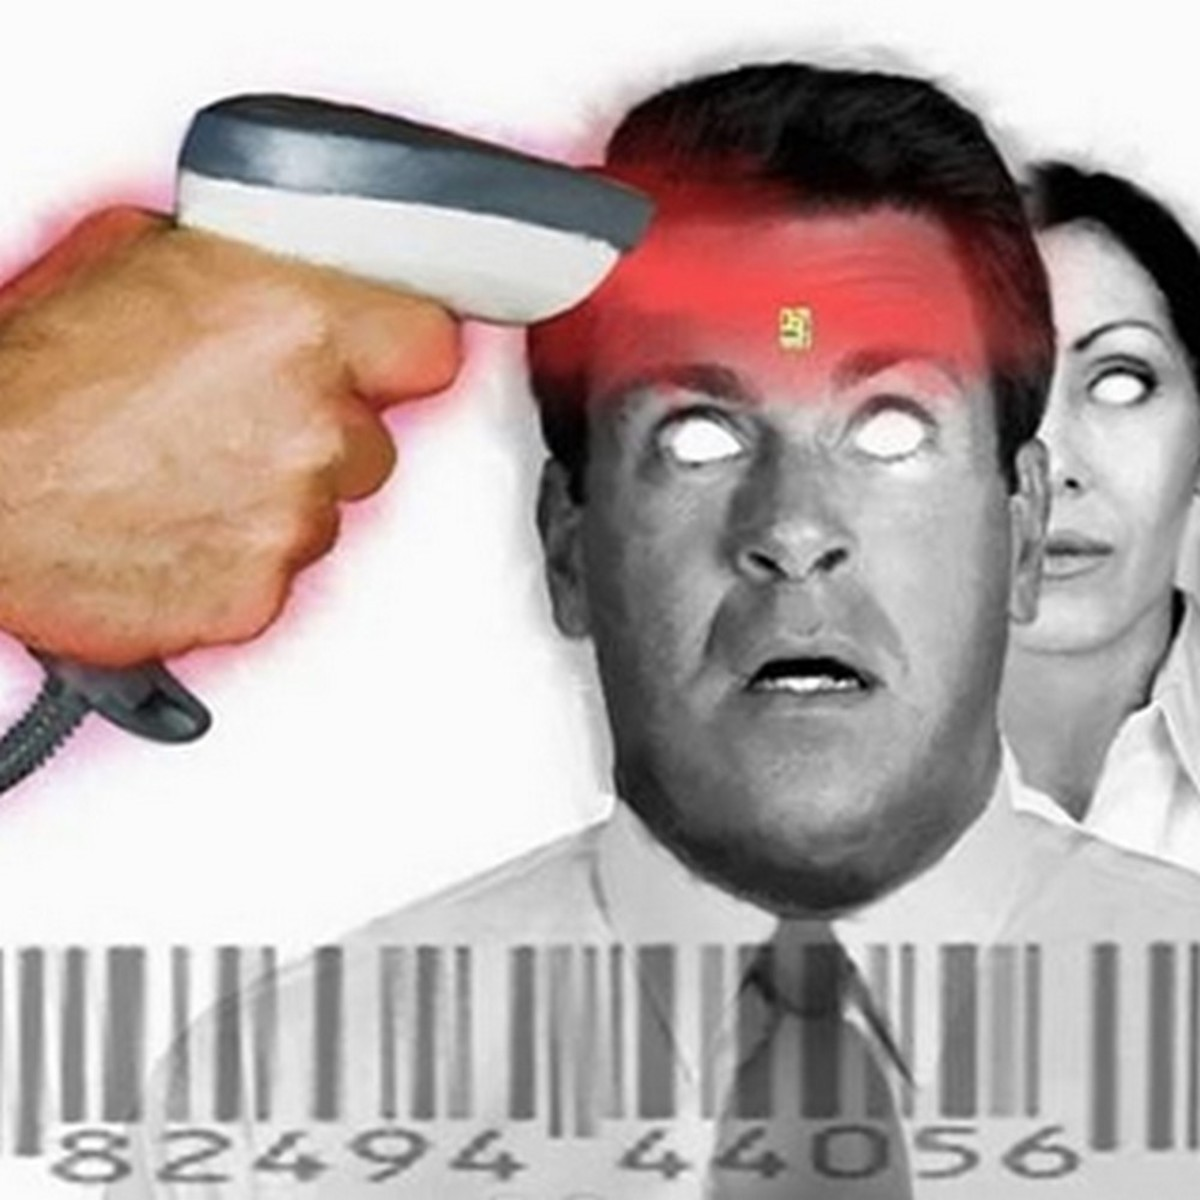 Not paranoia. Not fantasy. Not conspiracy theory. Just not mandated by The State yet. Human microchip implants have existed since 1998.